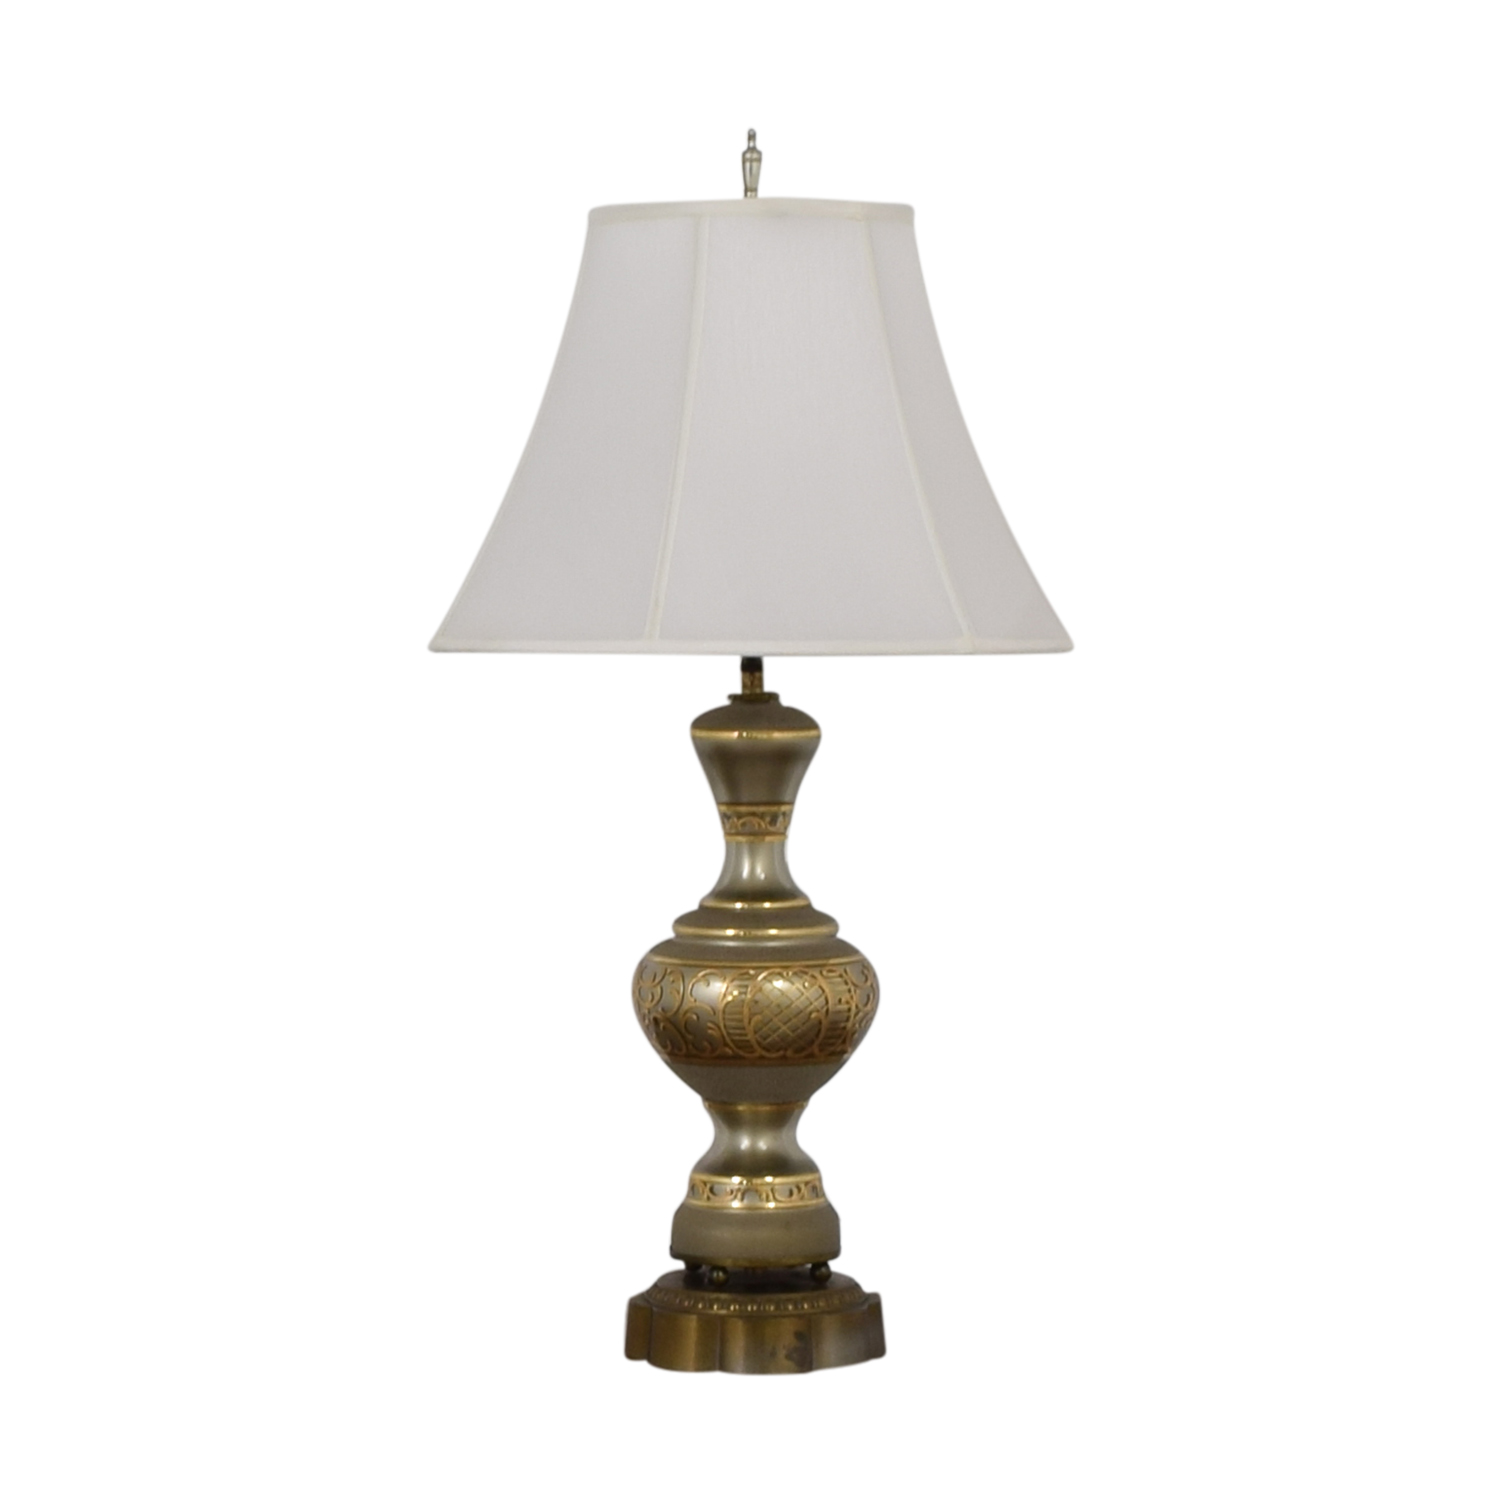 Vintage Gold Table Lamp Lamps